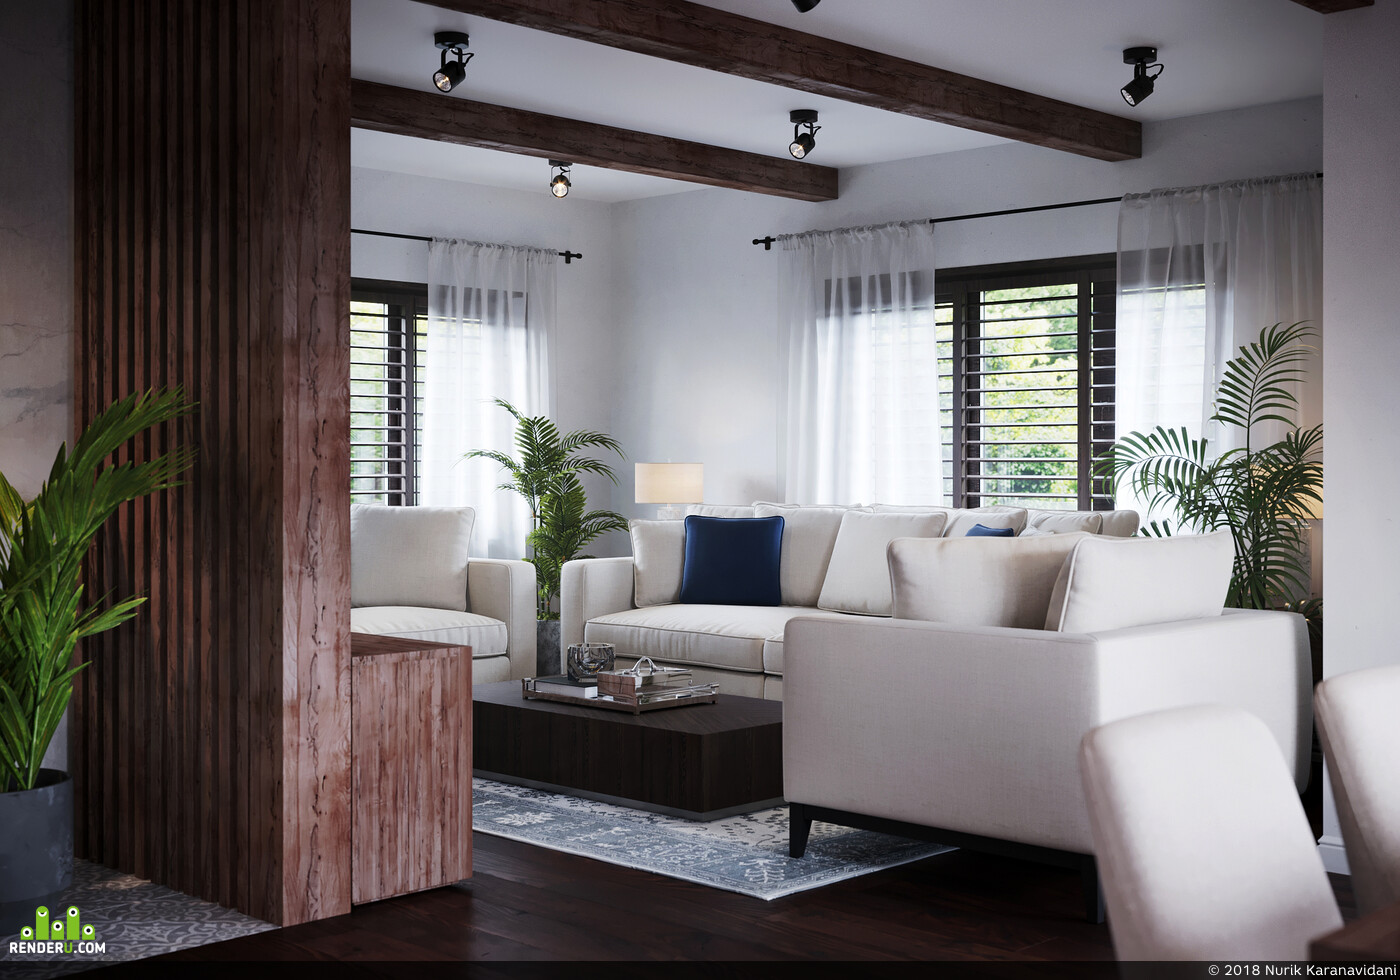 3ds Max, coronarenderer, interier, interiordesign, Adobe Photoshop, CG